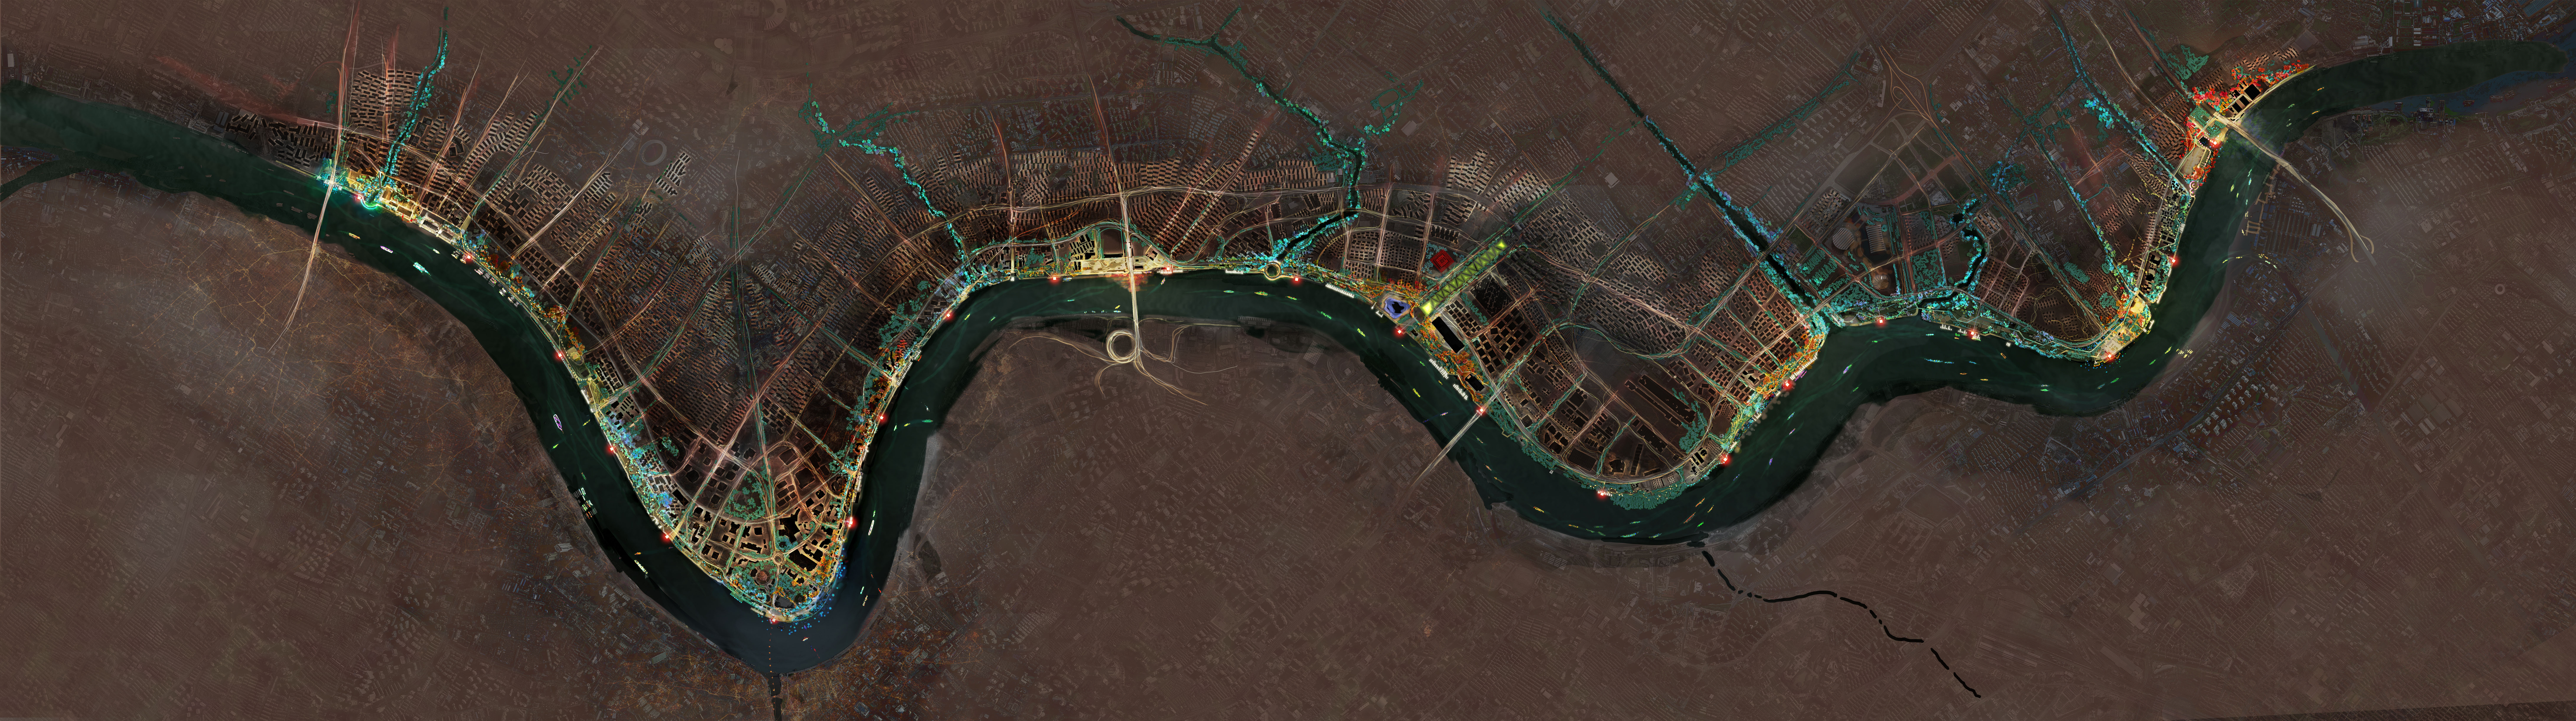 Shanghai Huang Pu River. Lighting Master Plan (courtesy: Loeïza Cabaret, Agence CONCEPTO)